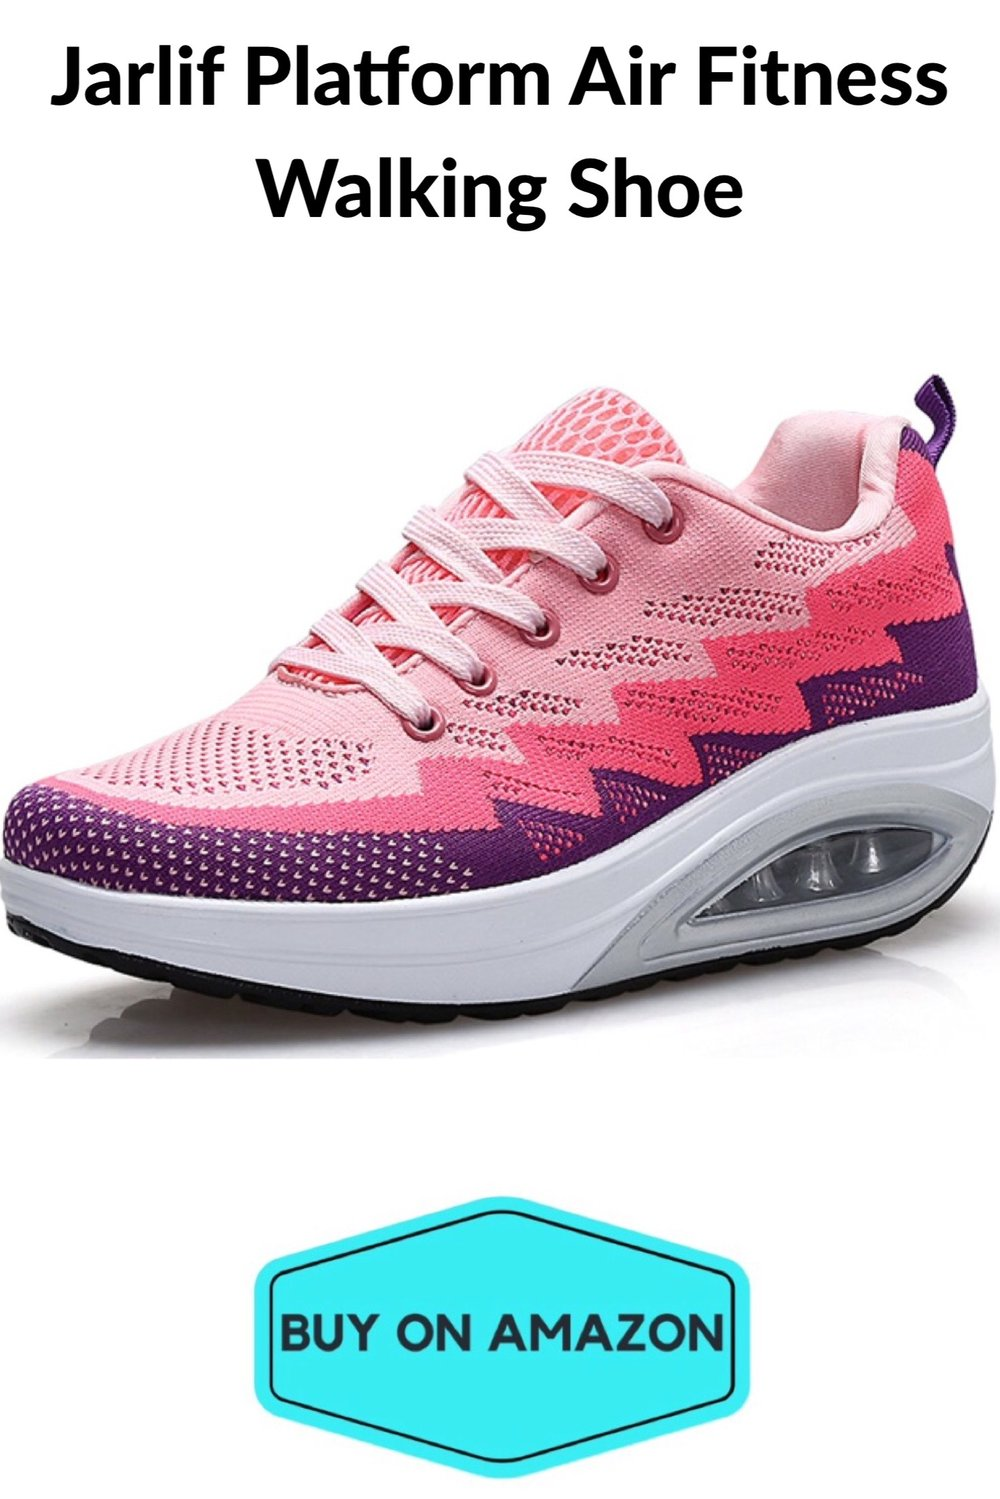 Jarlif Platform Air Fitness Women's Walking Shoe